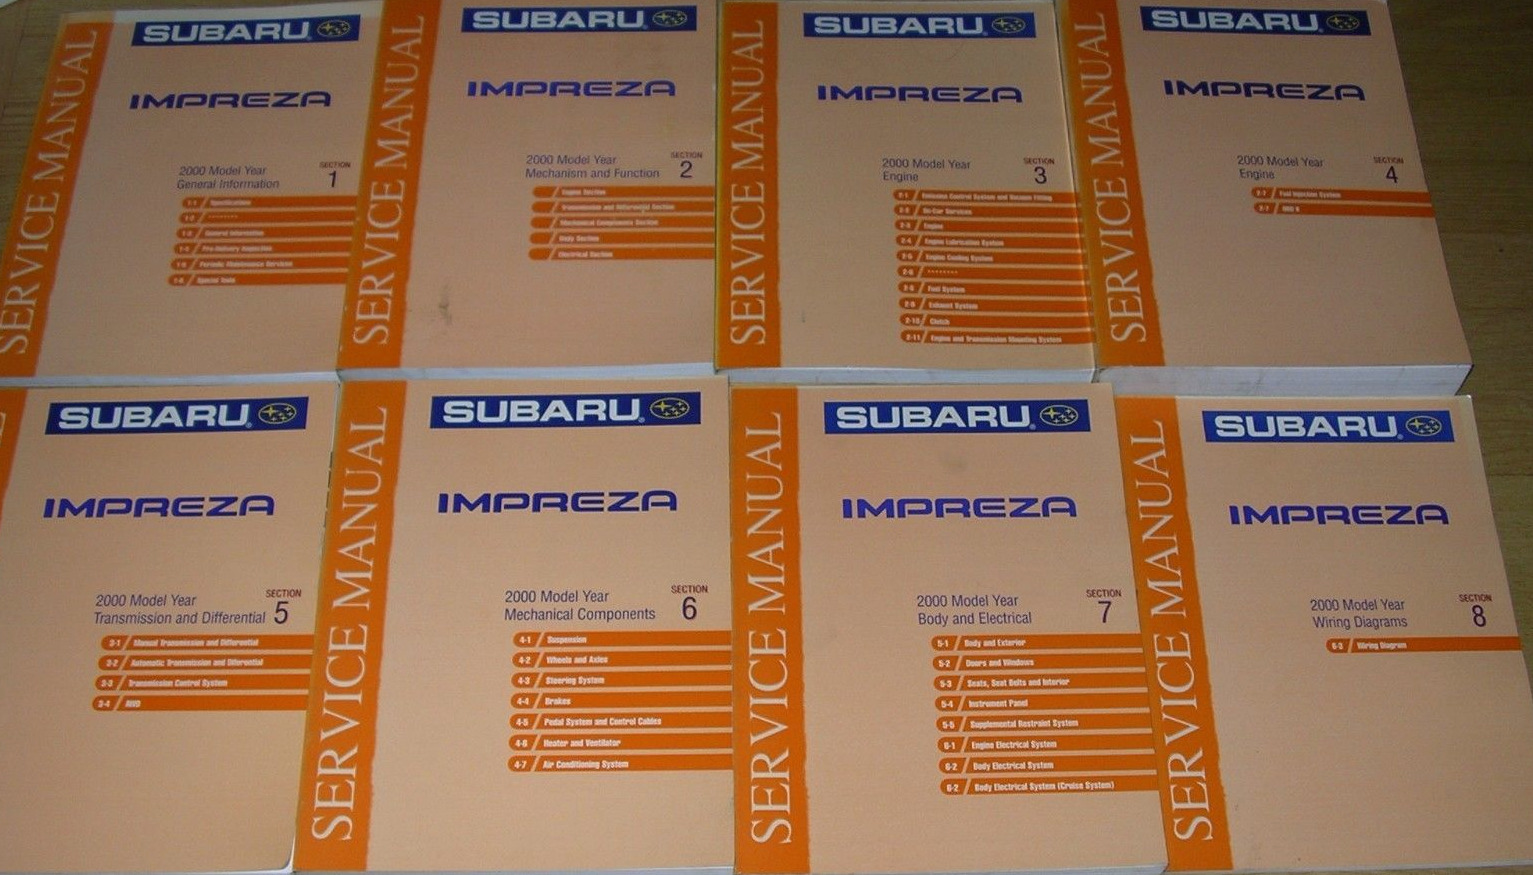 2000 Subaru IMPREZA Service Repair Shop Workshop Manual Set OEM Factory 1  of 1Only 1 available ...